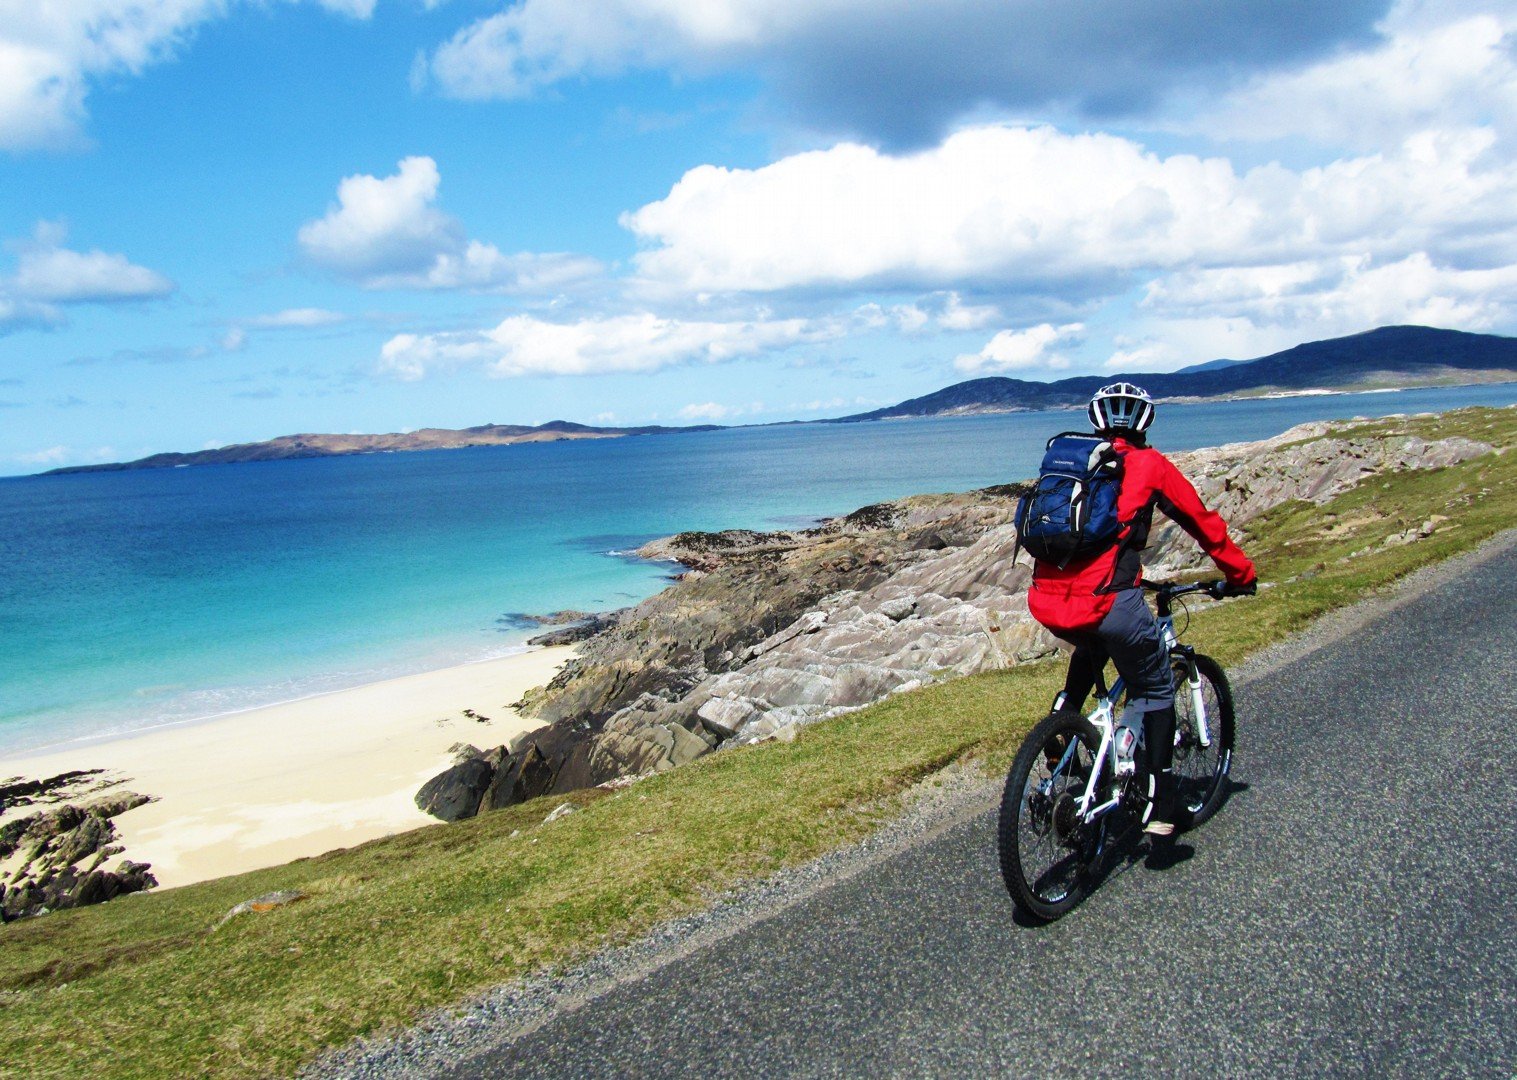 _Holiday.470.4285.jpg - Scotland - Hebridean Explorer - Guided Mountain Bike Holiday - Mountain Biking